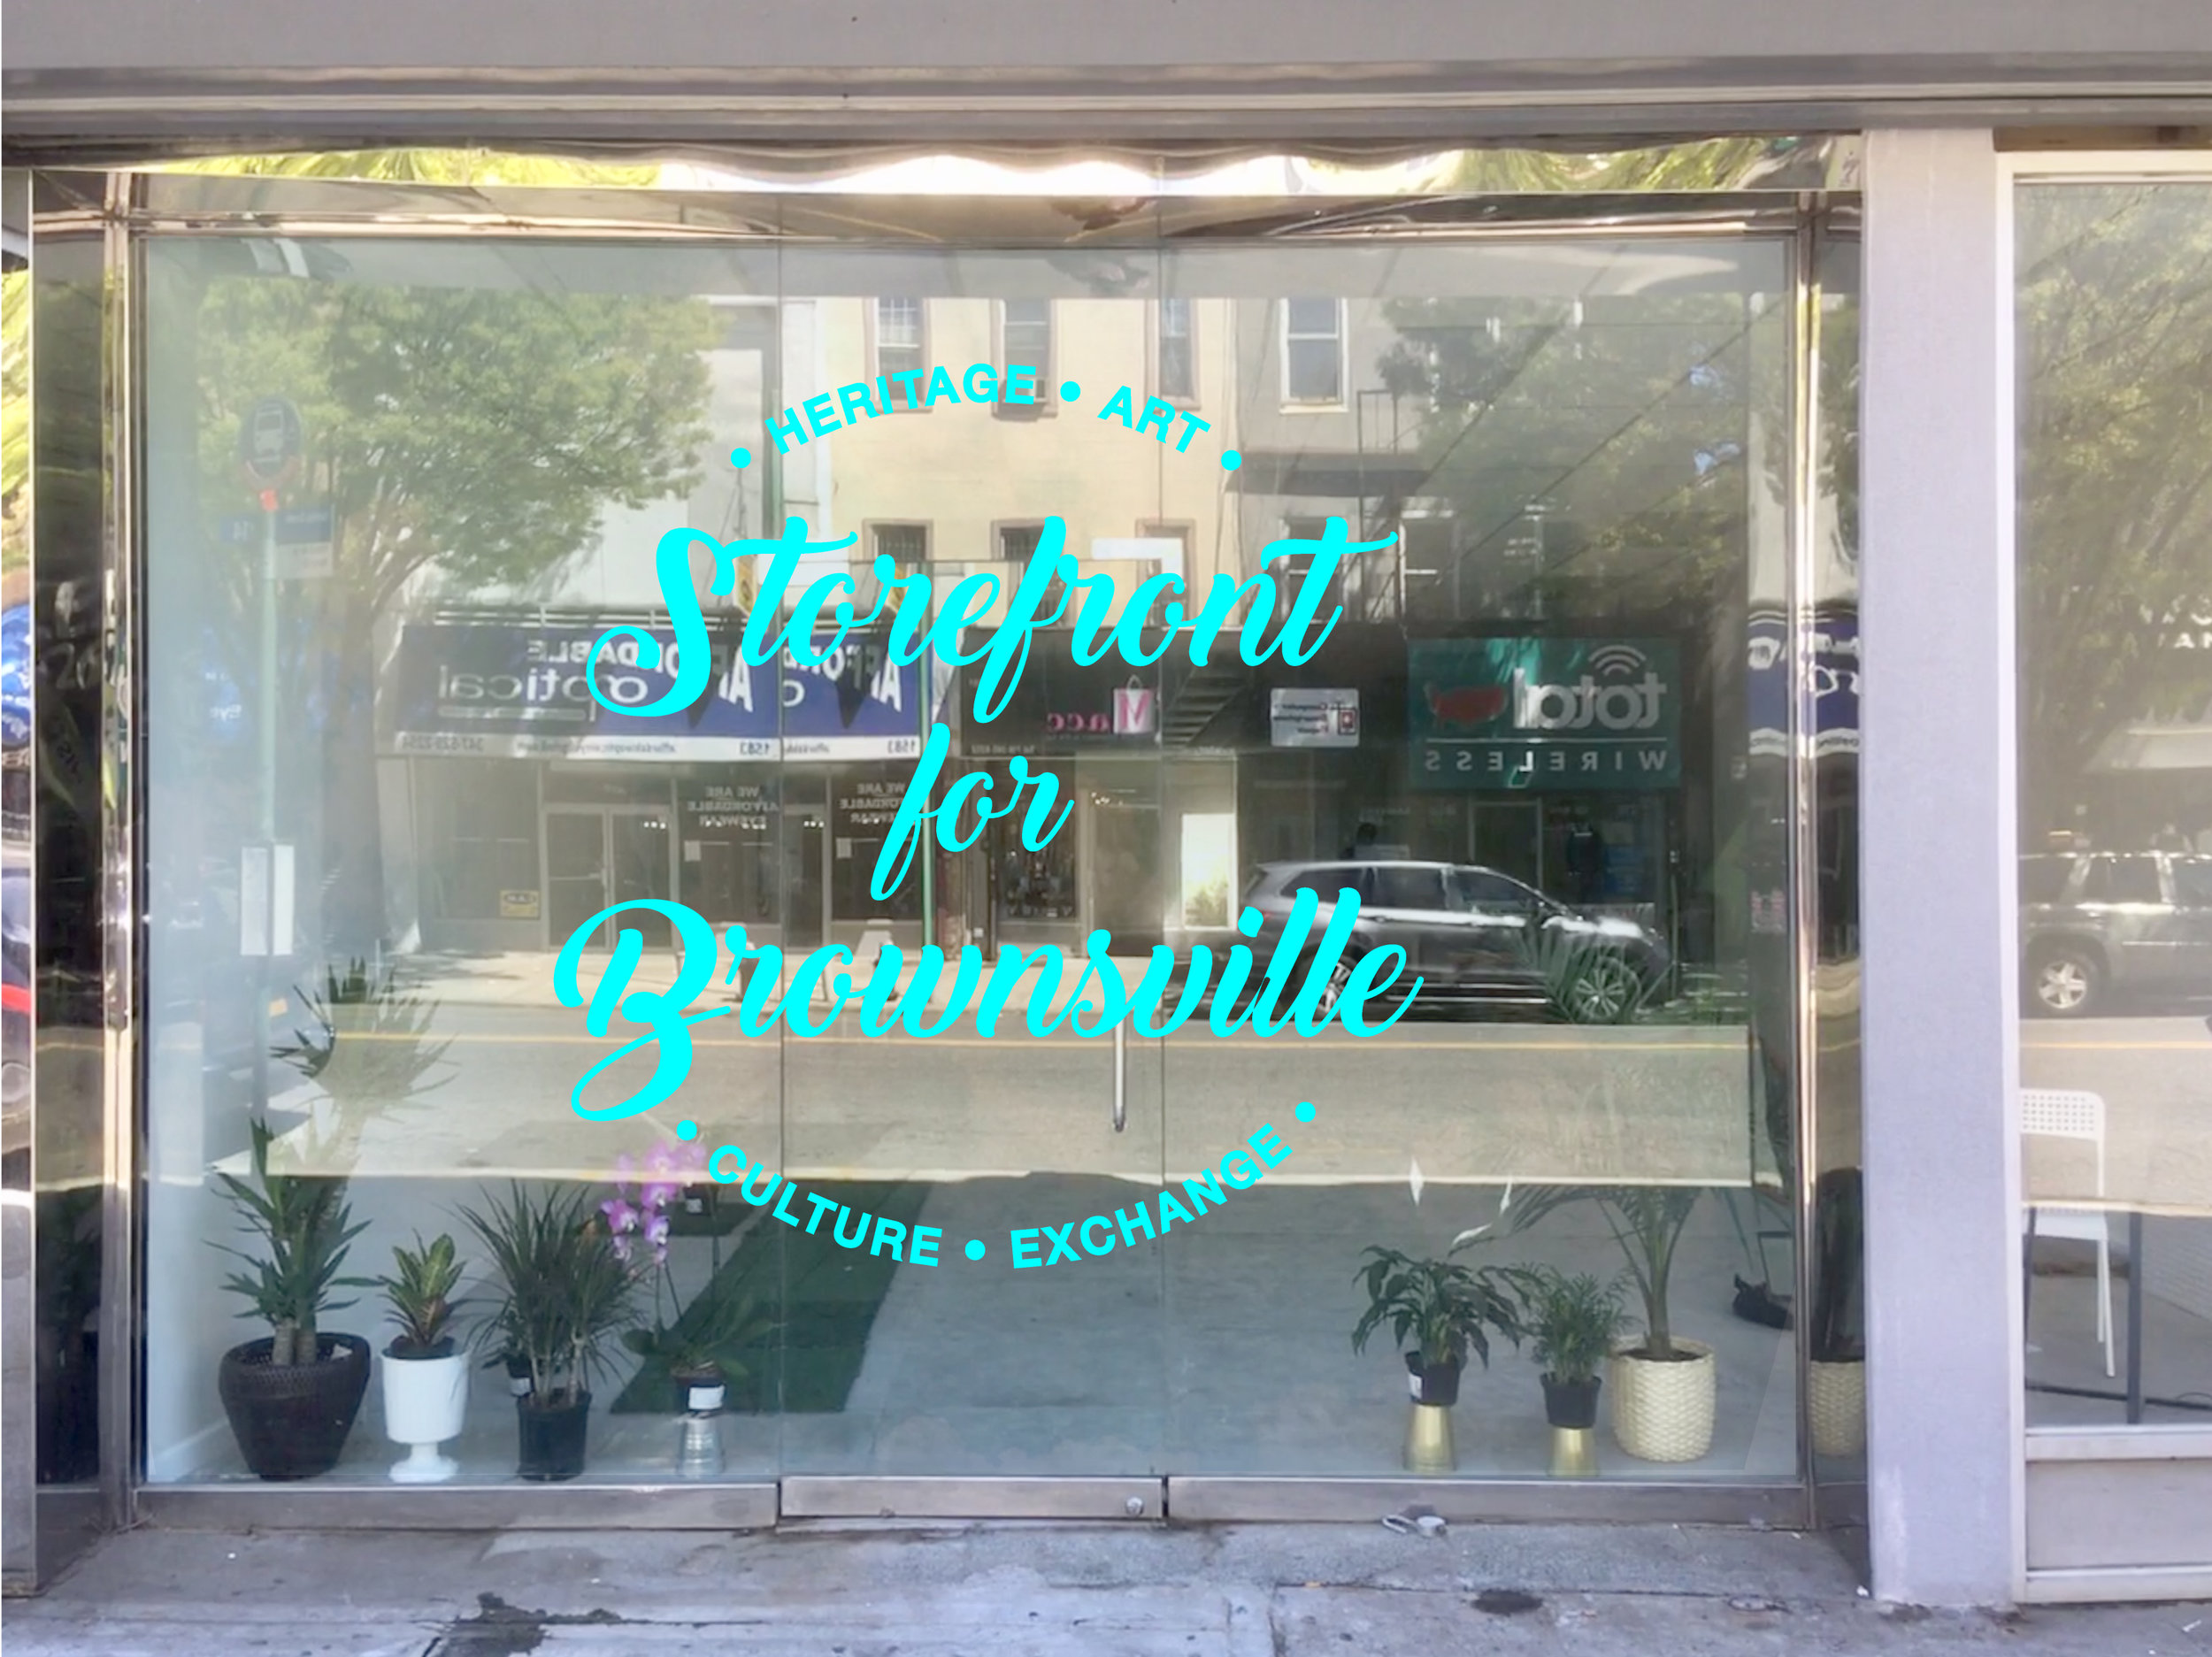 Image of the Storefront for Brownsville